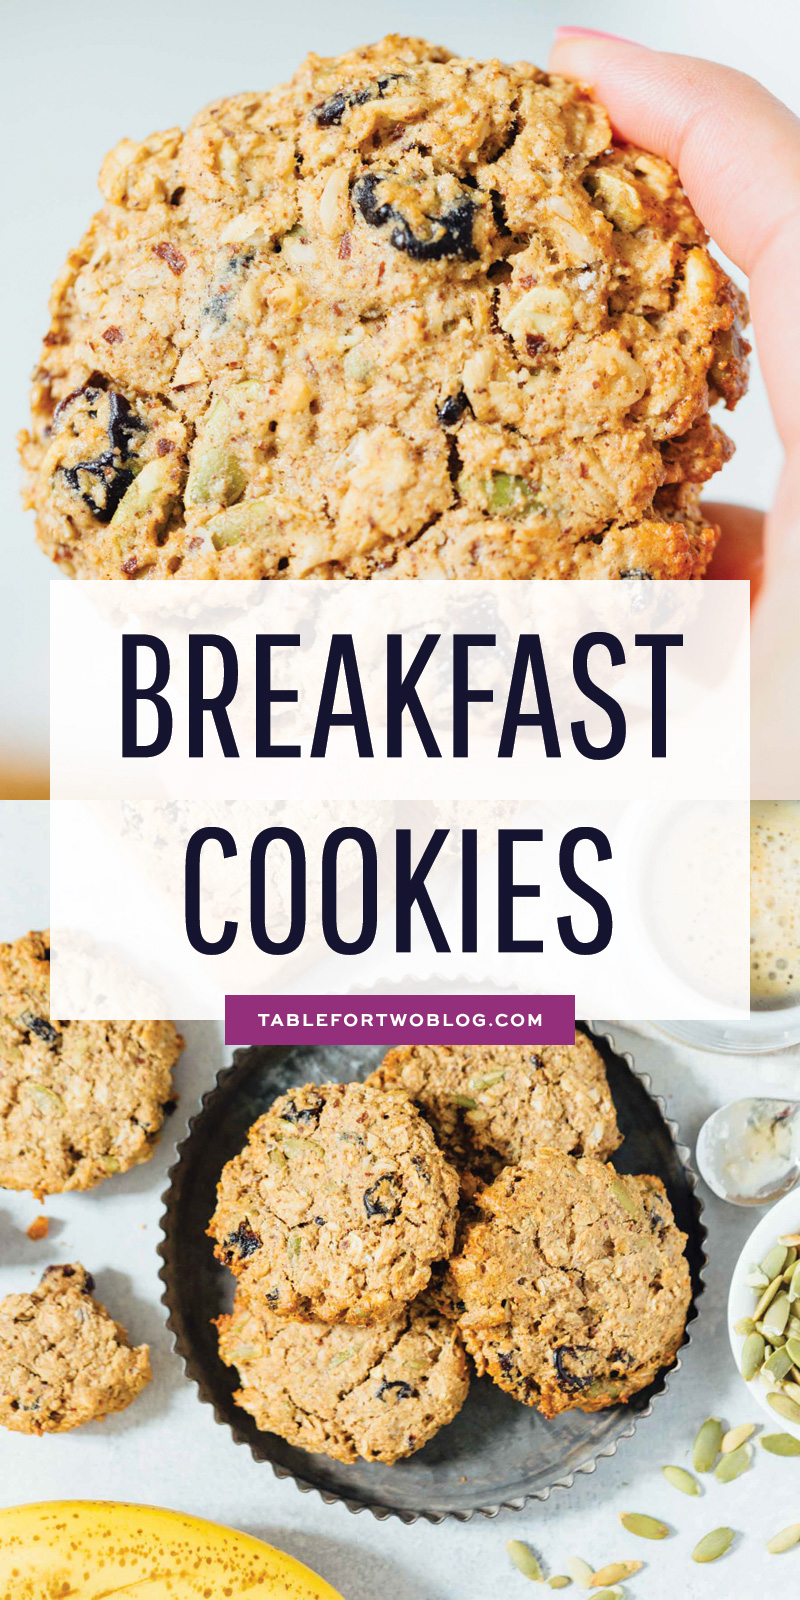 Naturally sweetened, vegan, and gluten-free. These breakfast cookies are a great on-the-go bite and good for any time of day! #cookies #breakfastcookies #glutenfreebaking #dairyfree #veganbaking #vegan #glutenfree #naturallysweetened